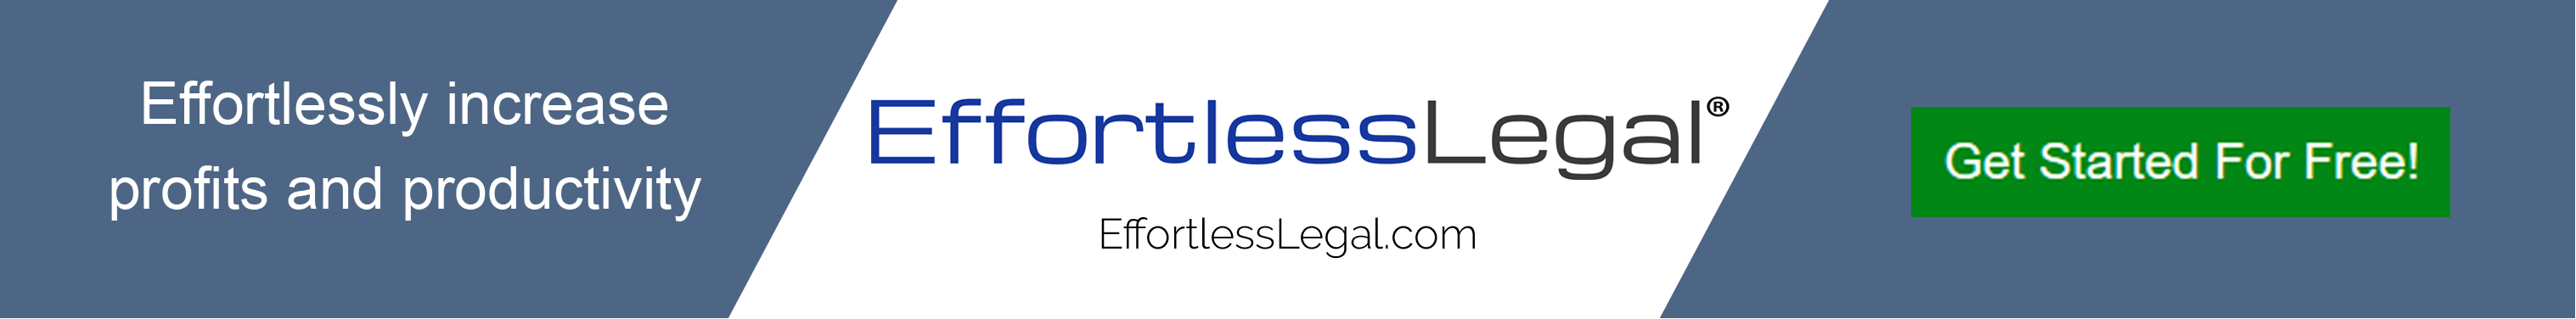 Online Intake Form Automation and Legal Billing Software | EffortlessLegal.com